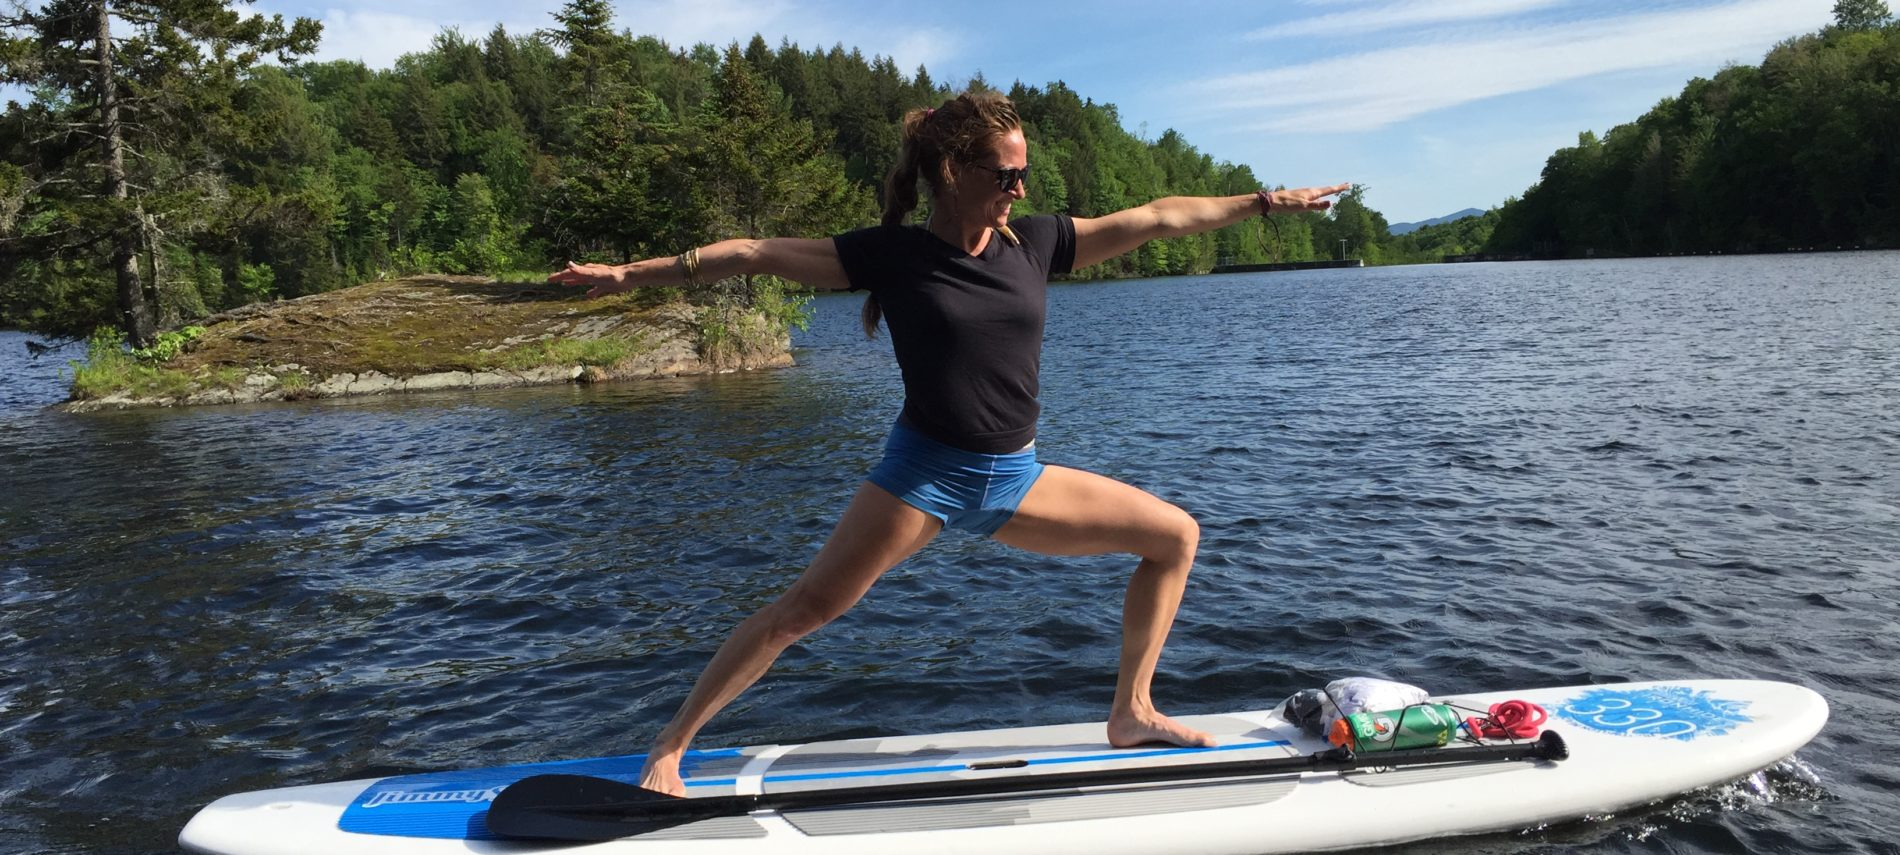 Paddle boarding in Vermont